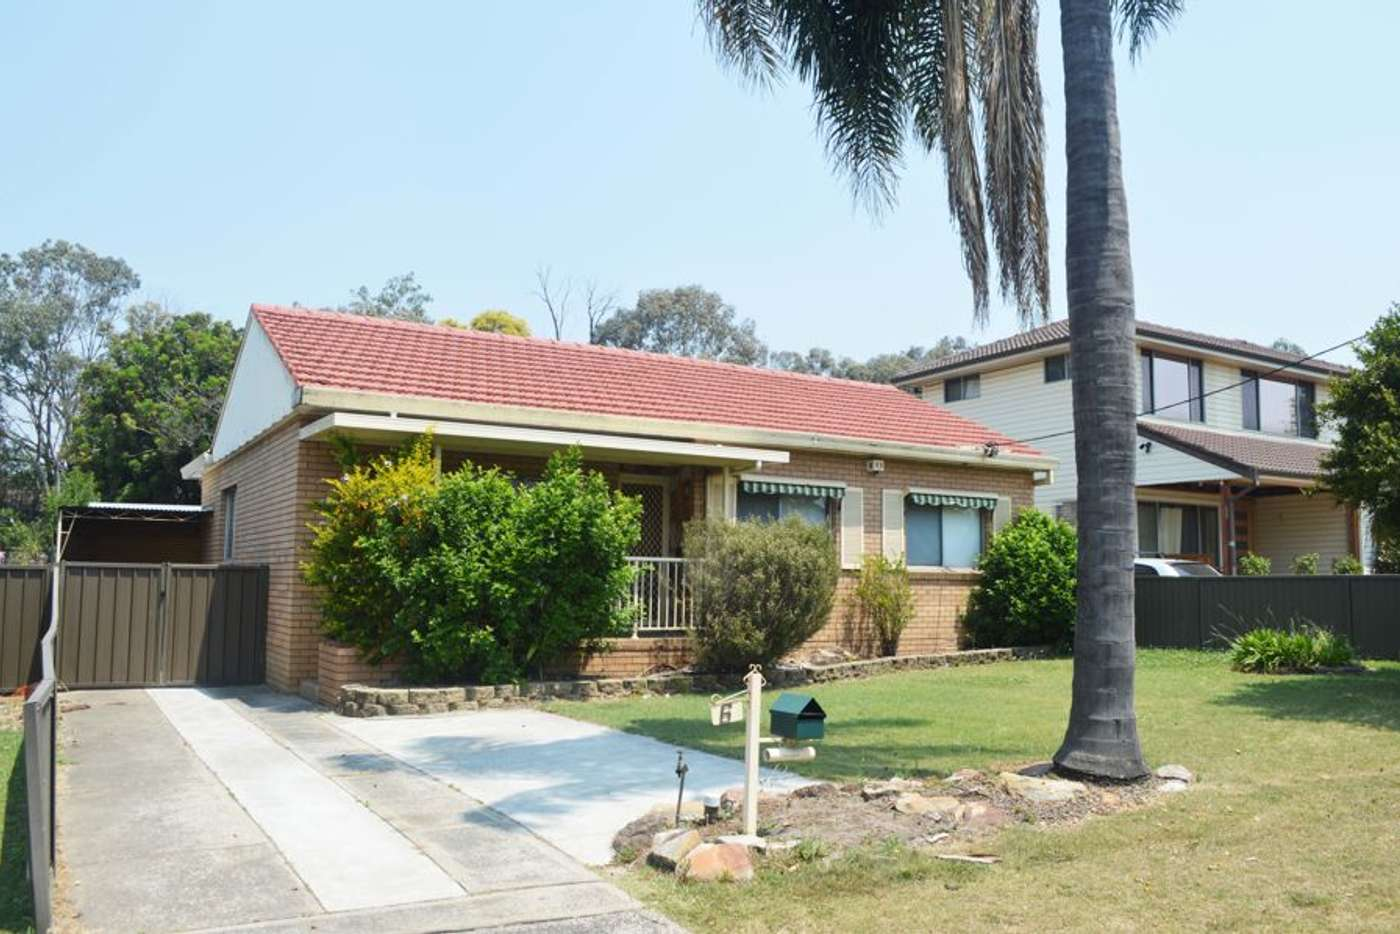 Main view of Homely house listing, 6 Crosby st, Greystanes NSW 2145